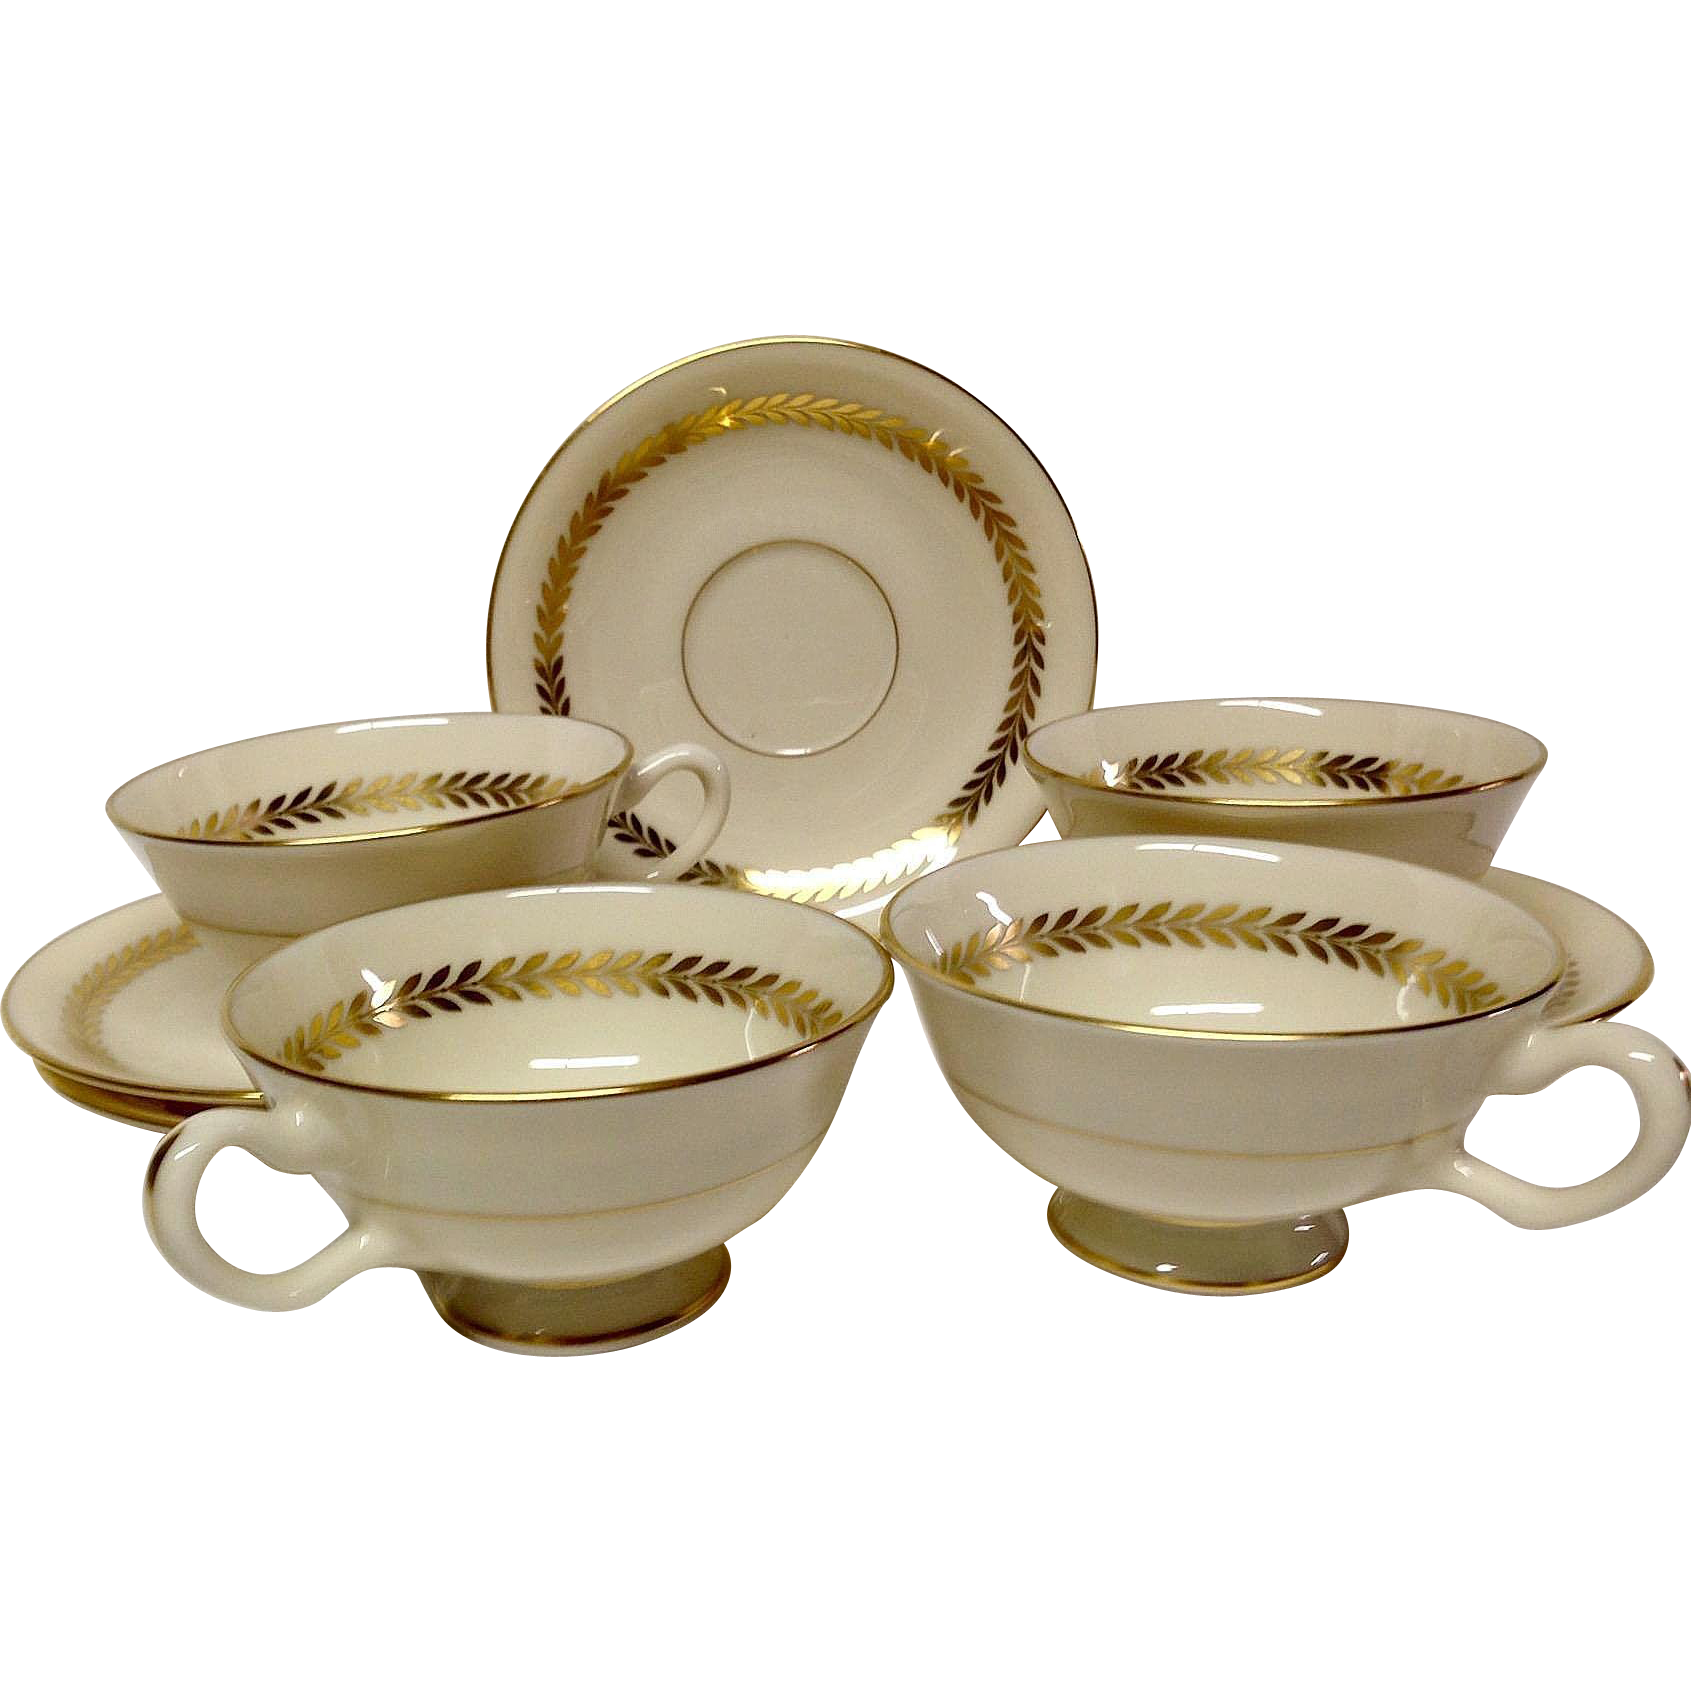 Set (4) Lenox Imperial P338 Cup & Saucer Sets